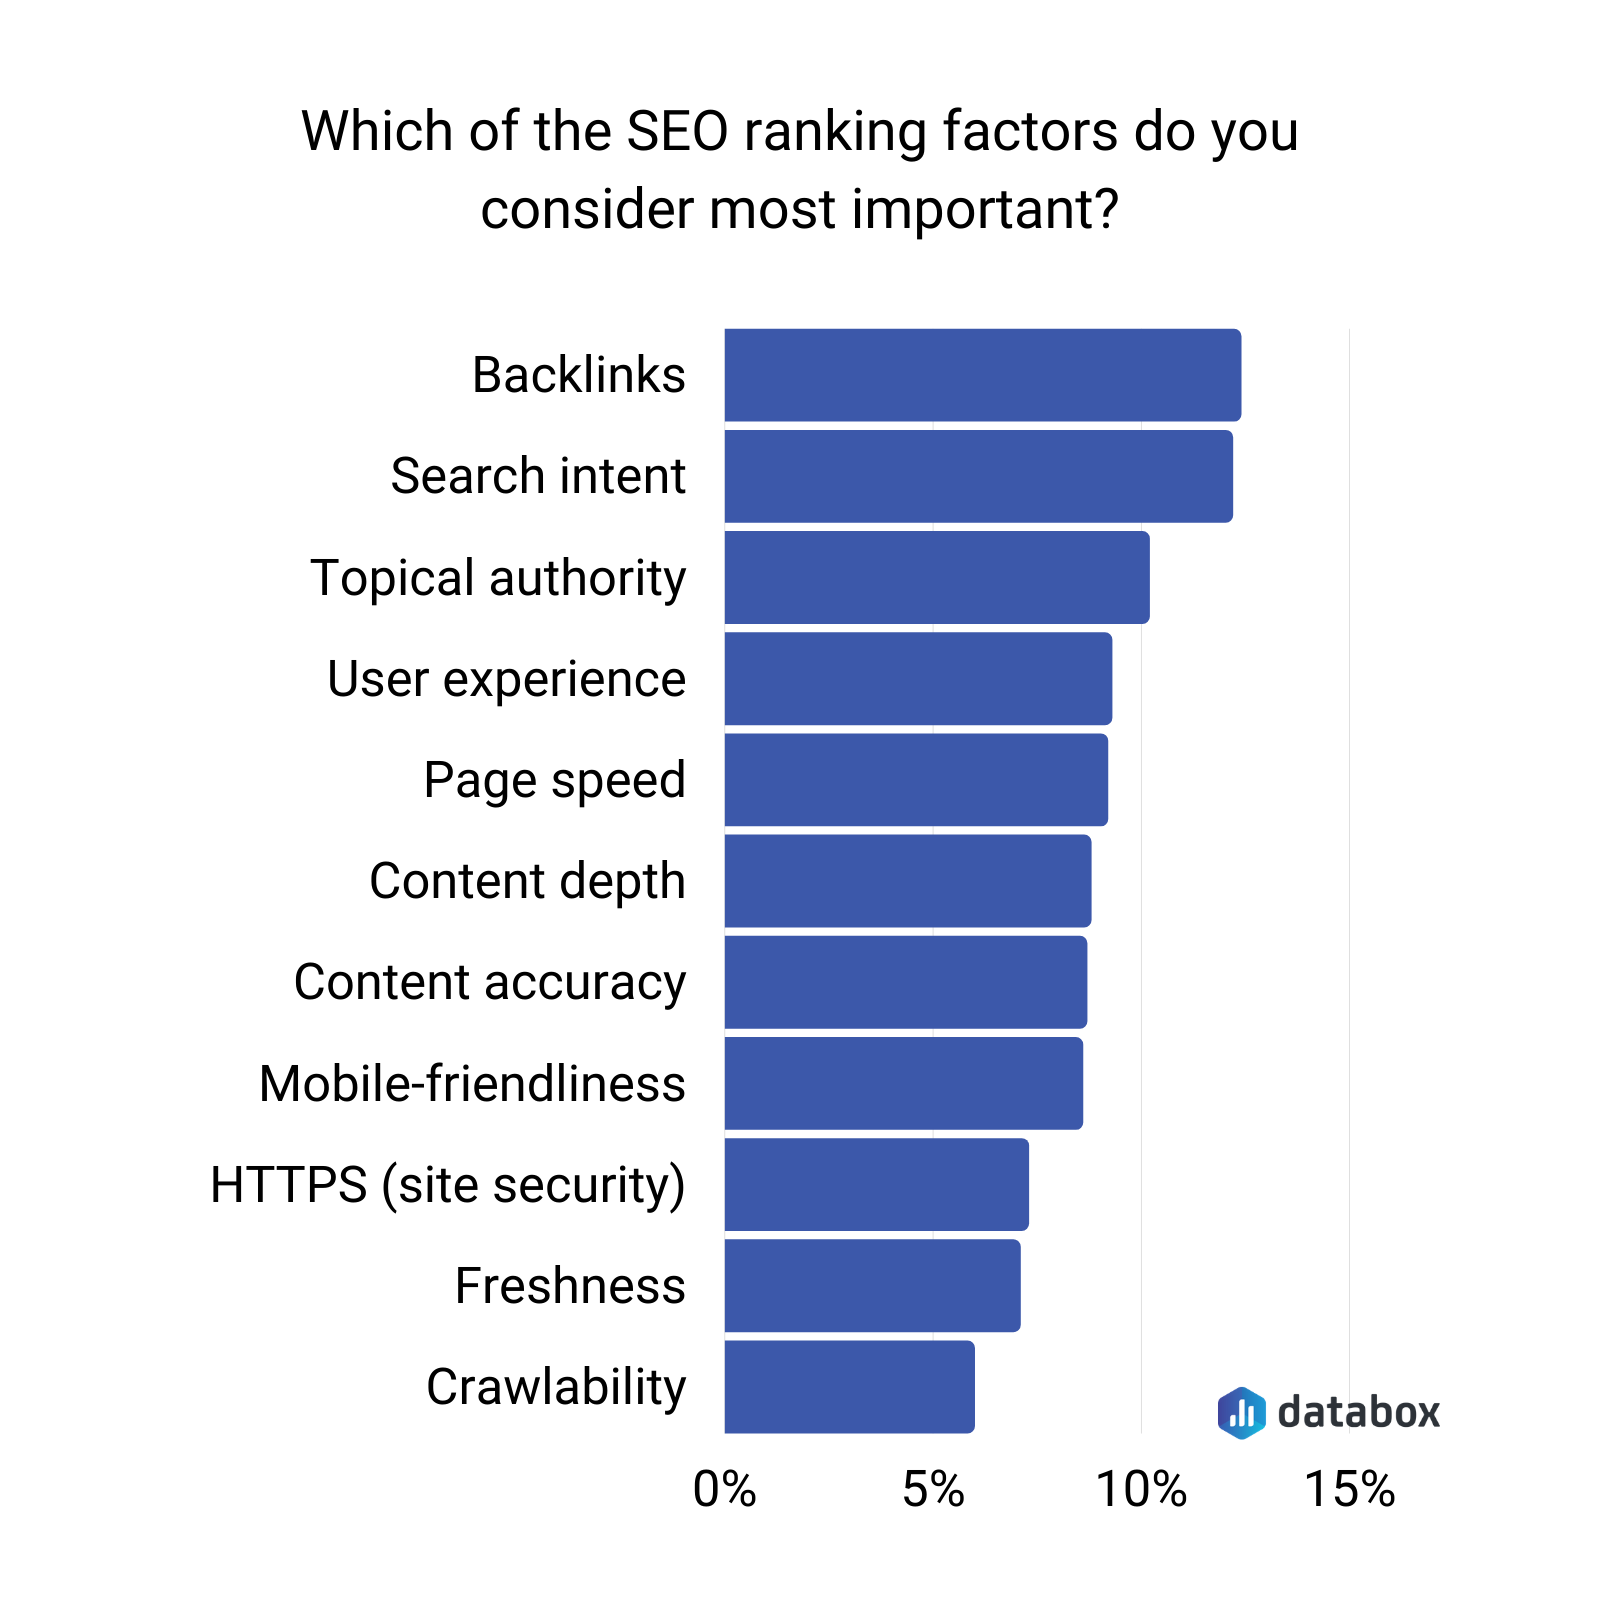 which of the seo ranking factors do you consider the most important